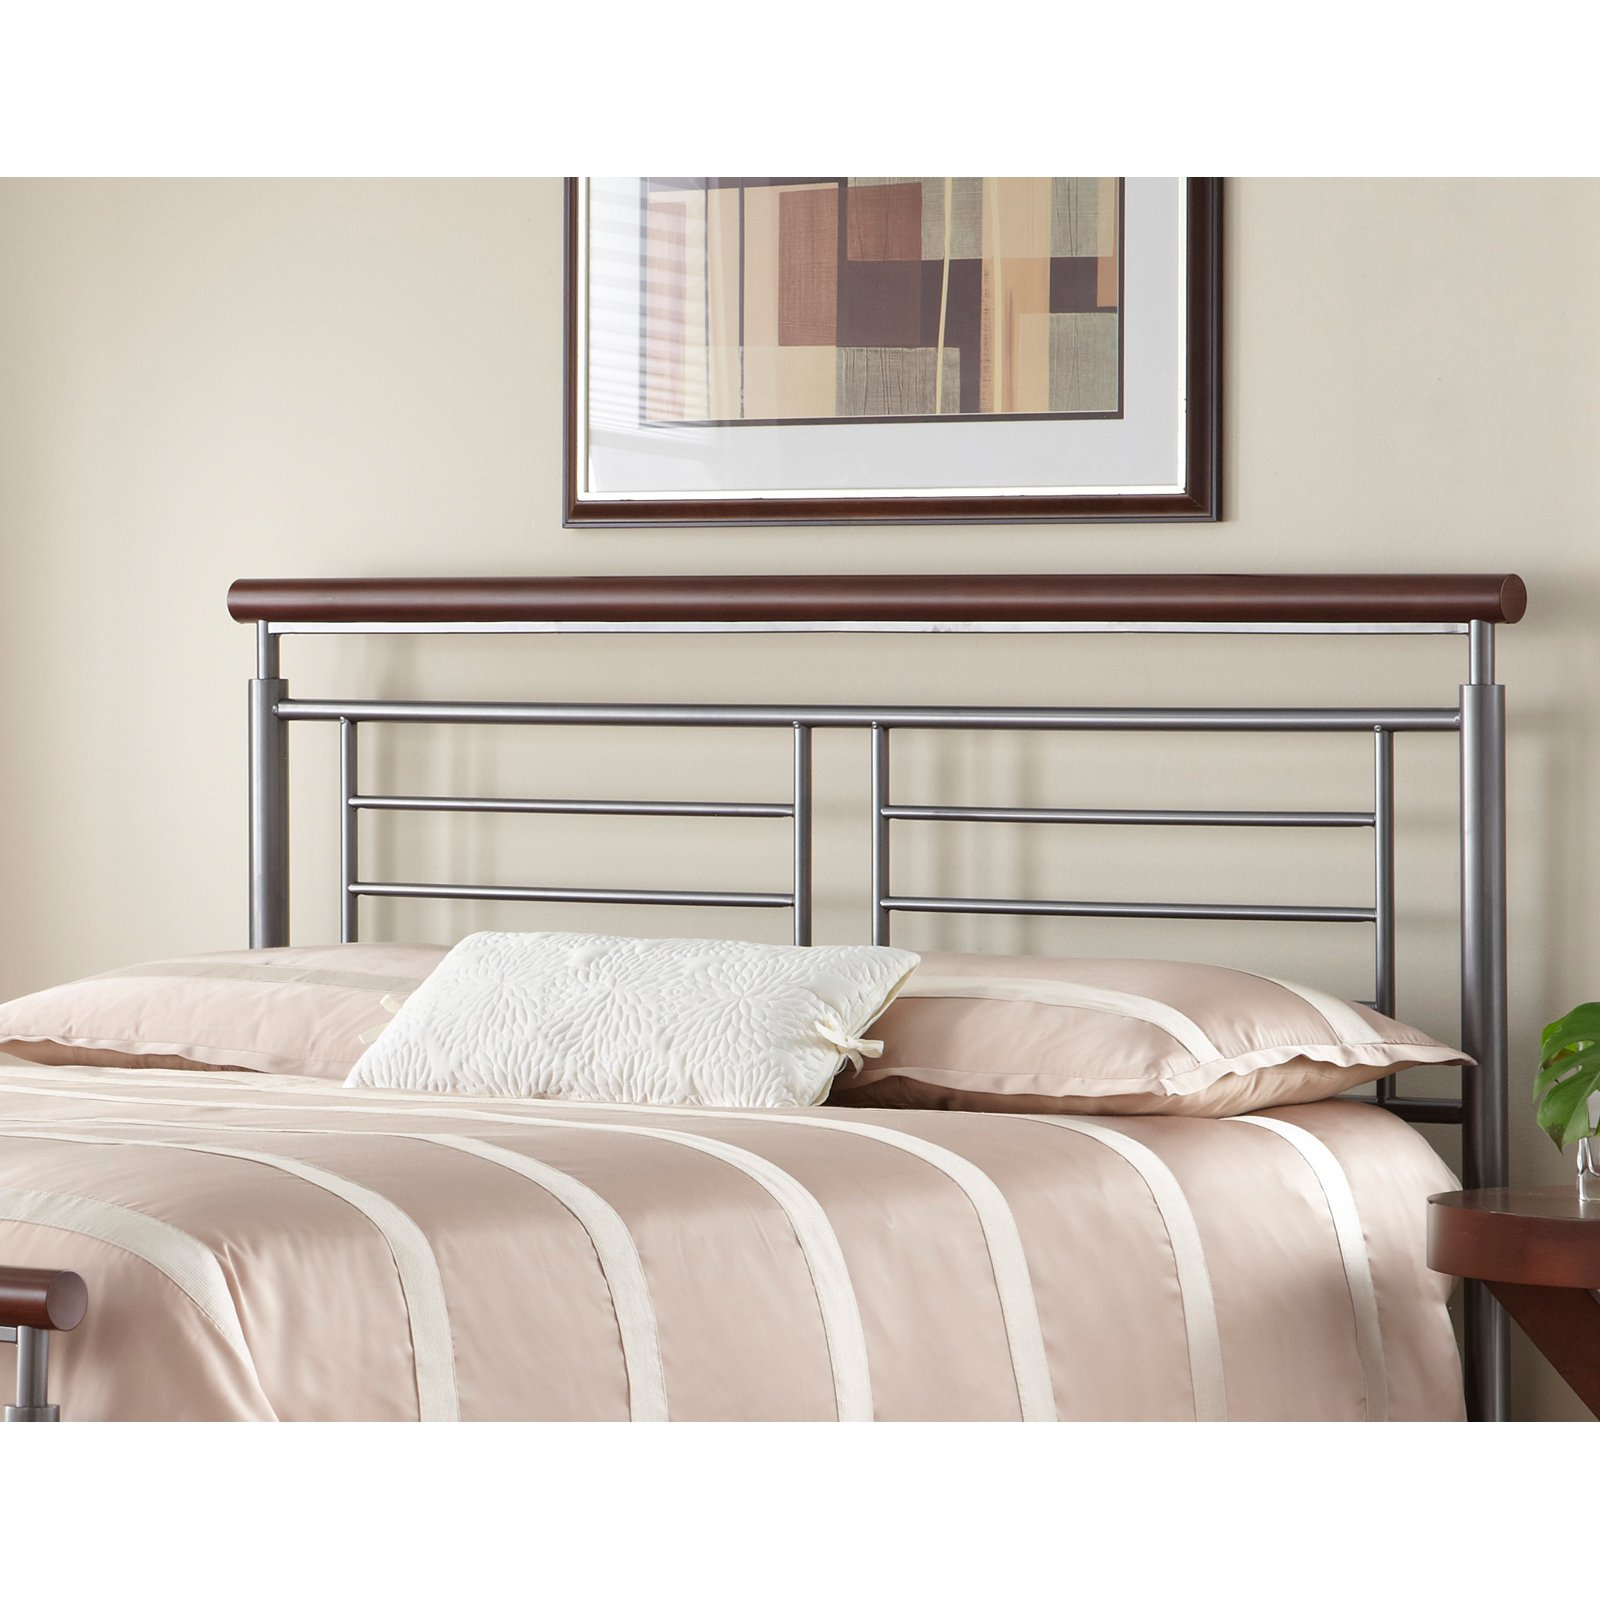 Fontane Metal Headboard With Geometric Panel And Rounded Cherry Top Rail,  Silver Finish, California